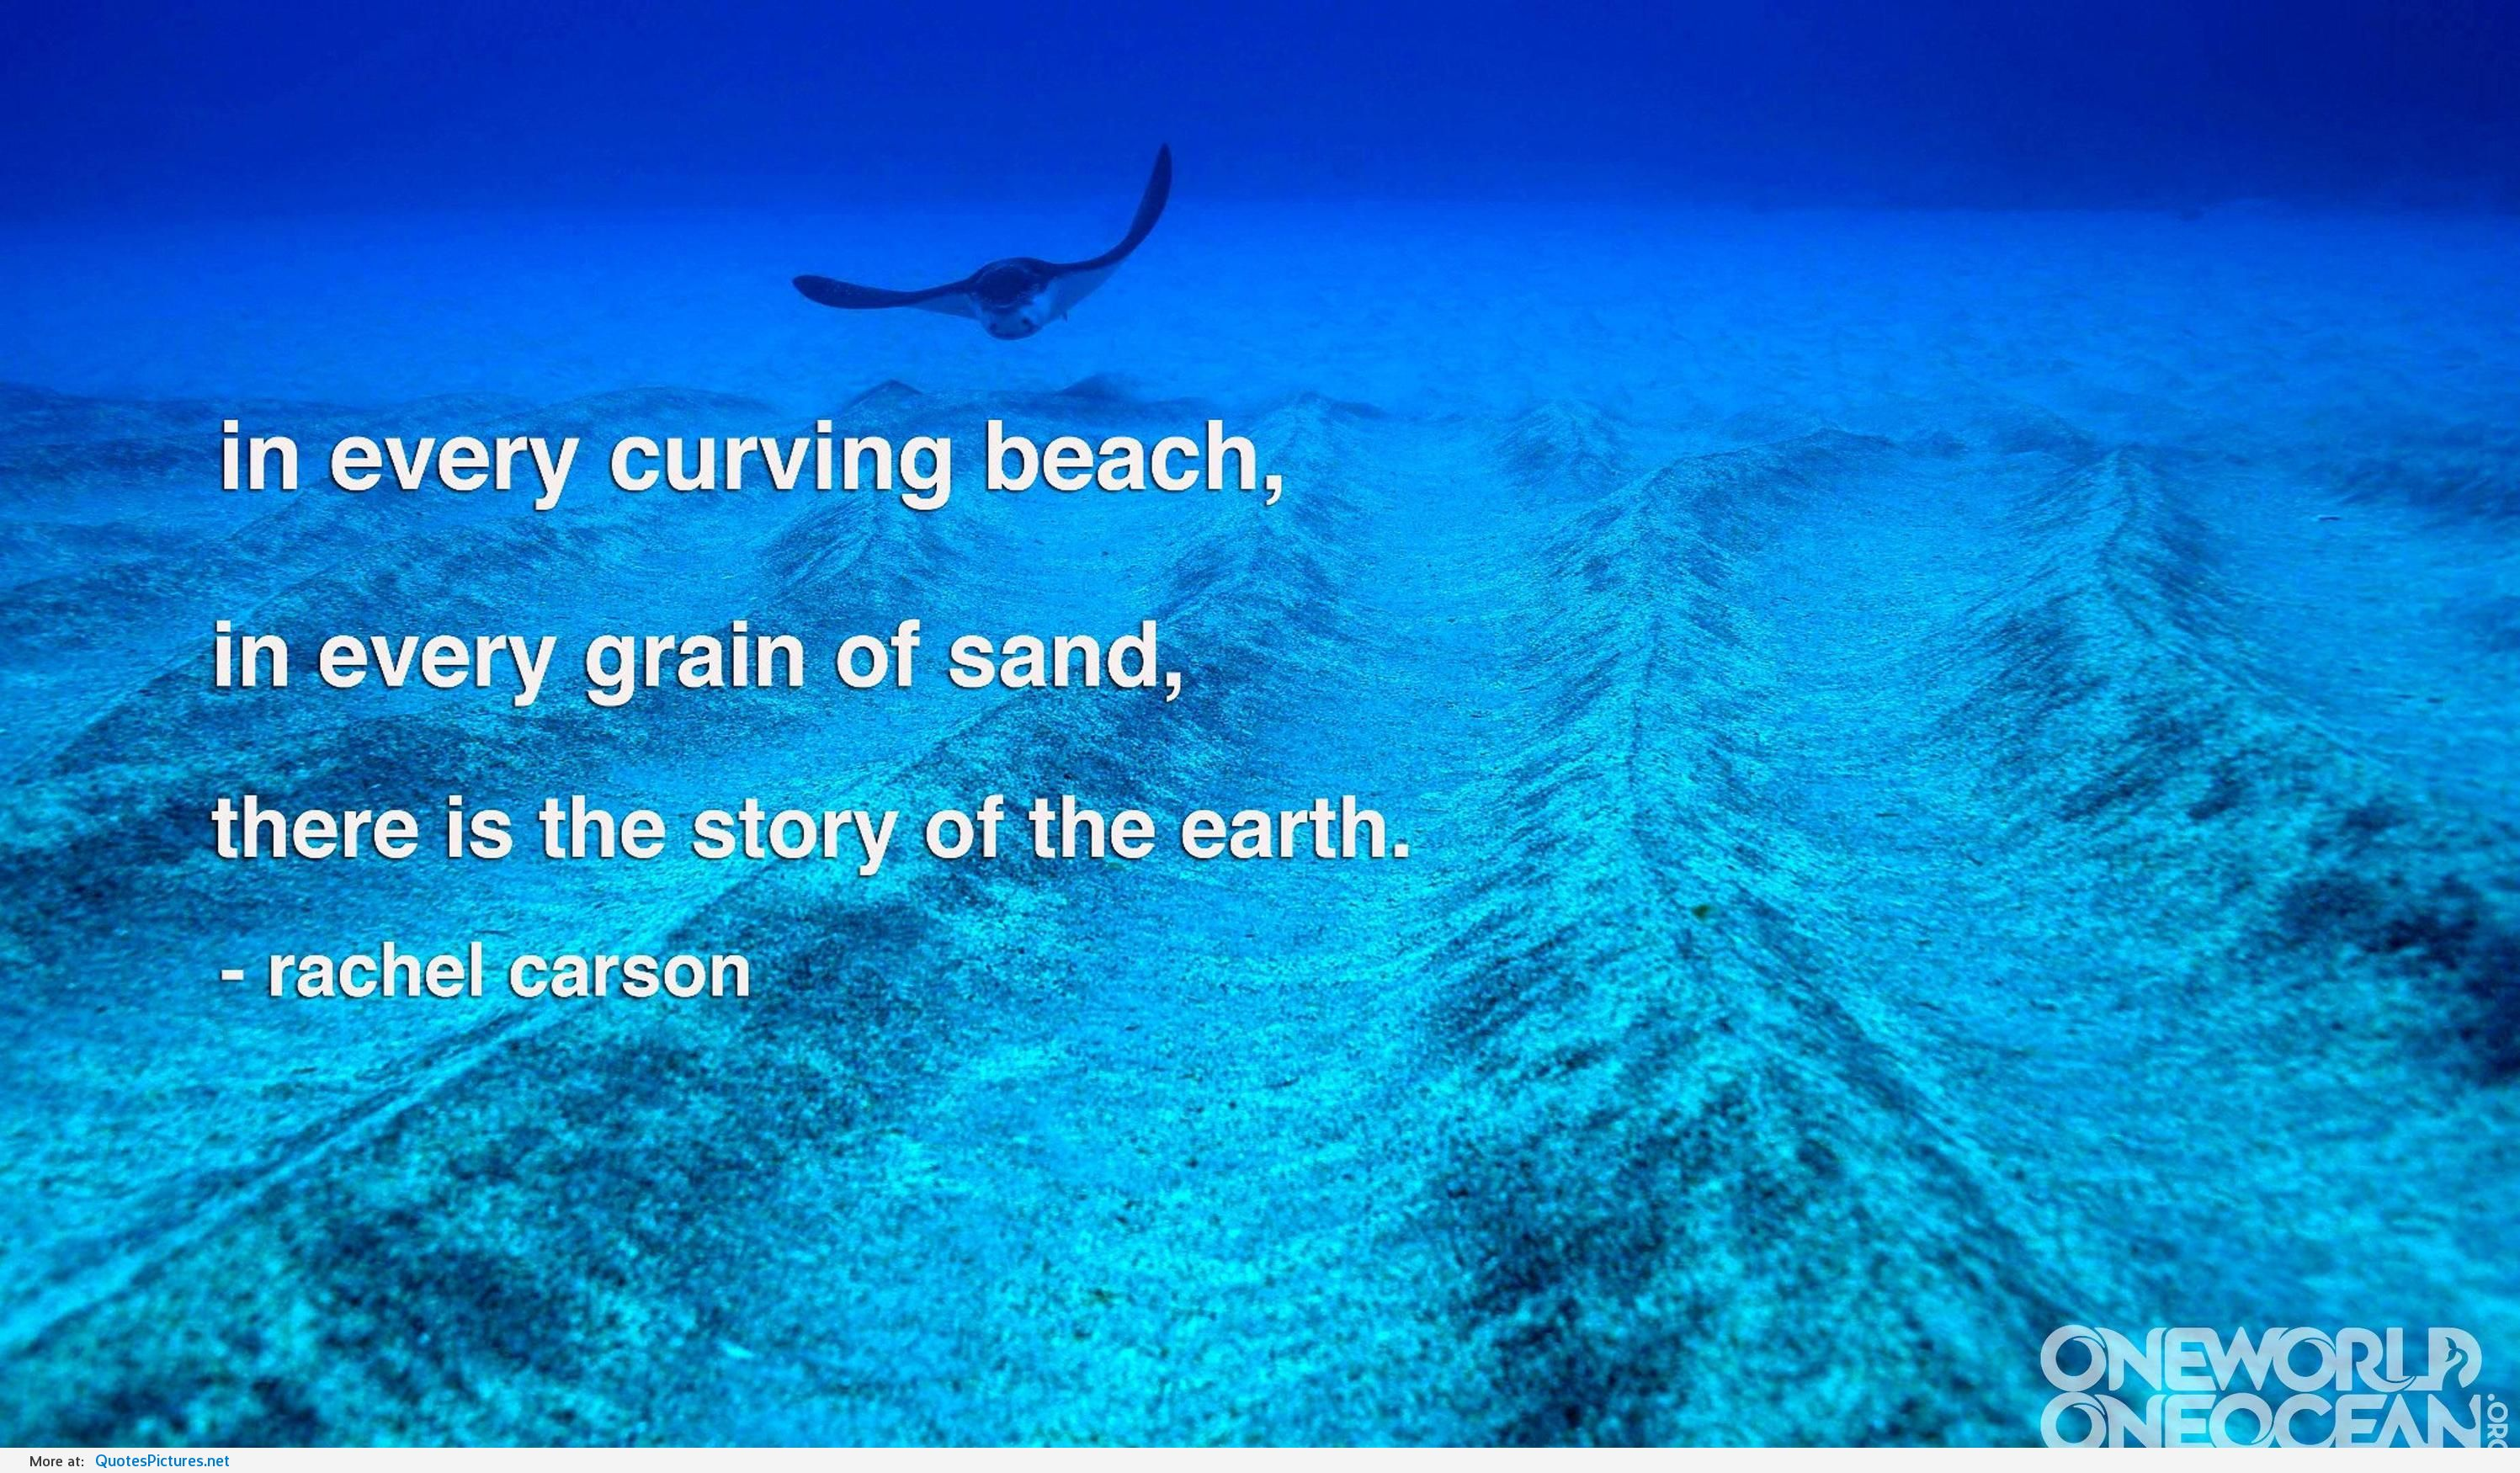 In Every Curving Beach